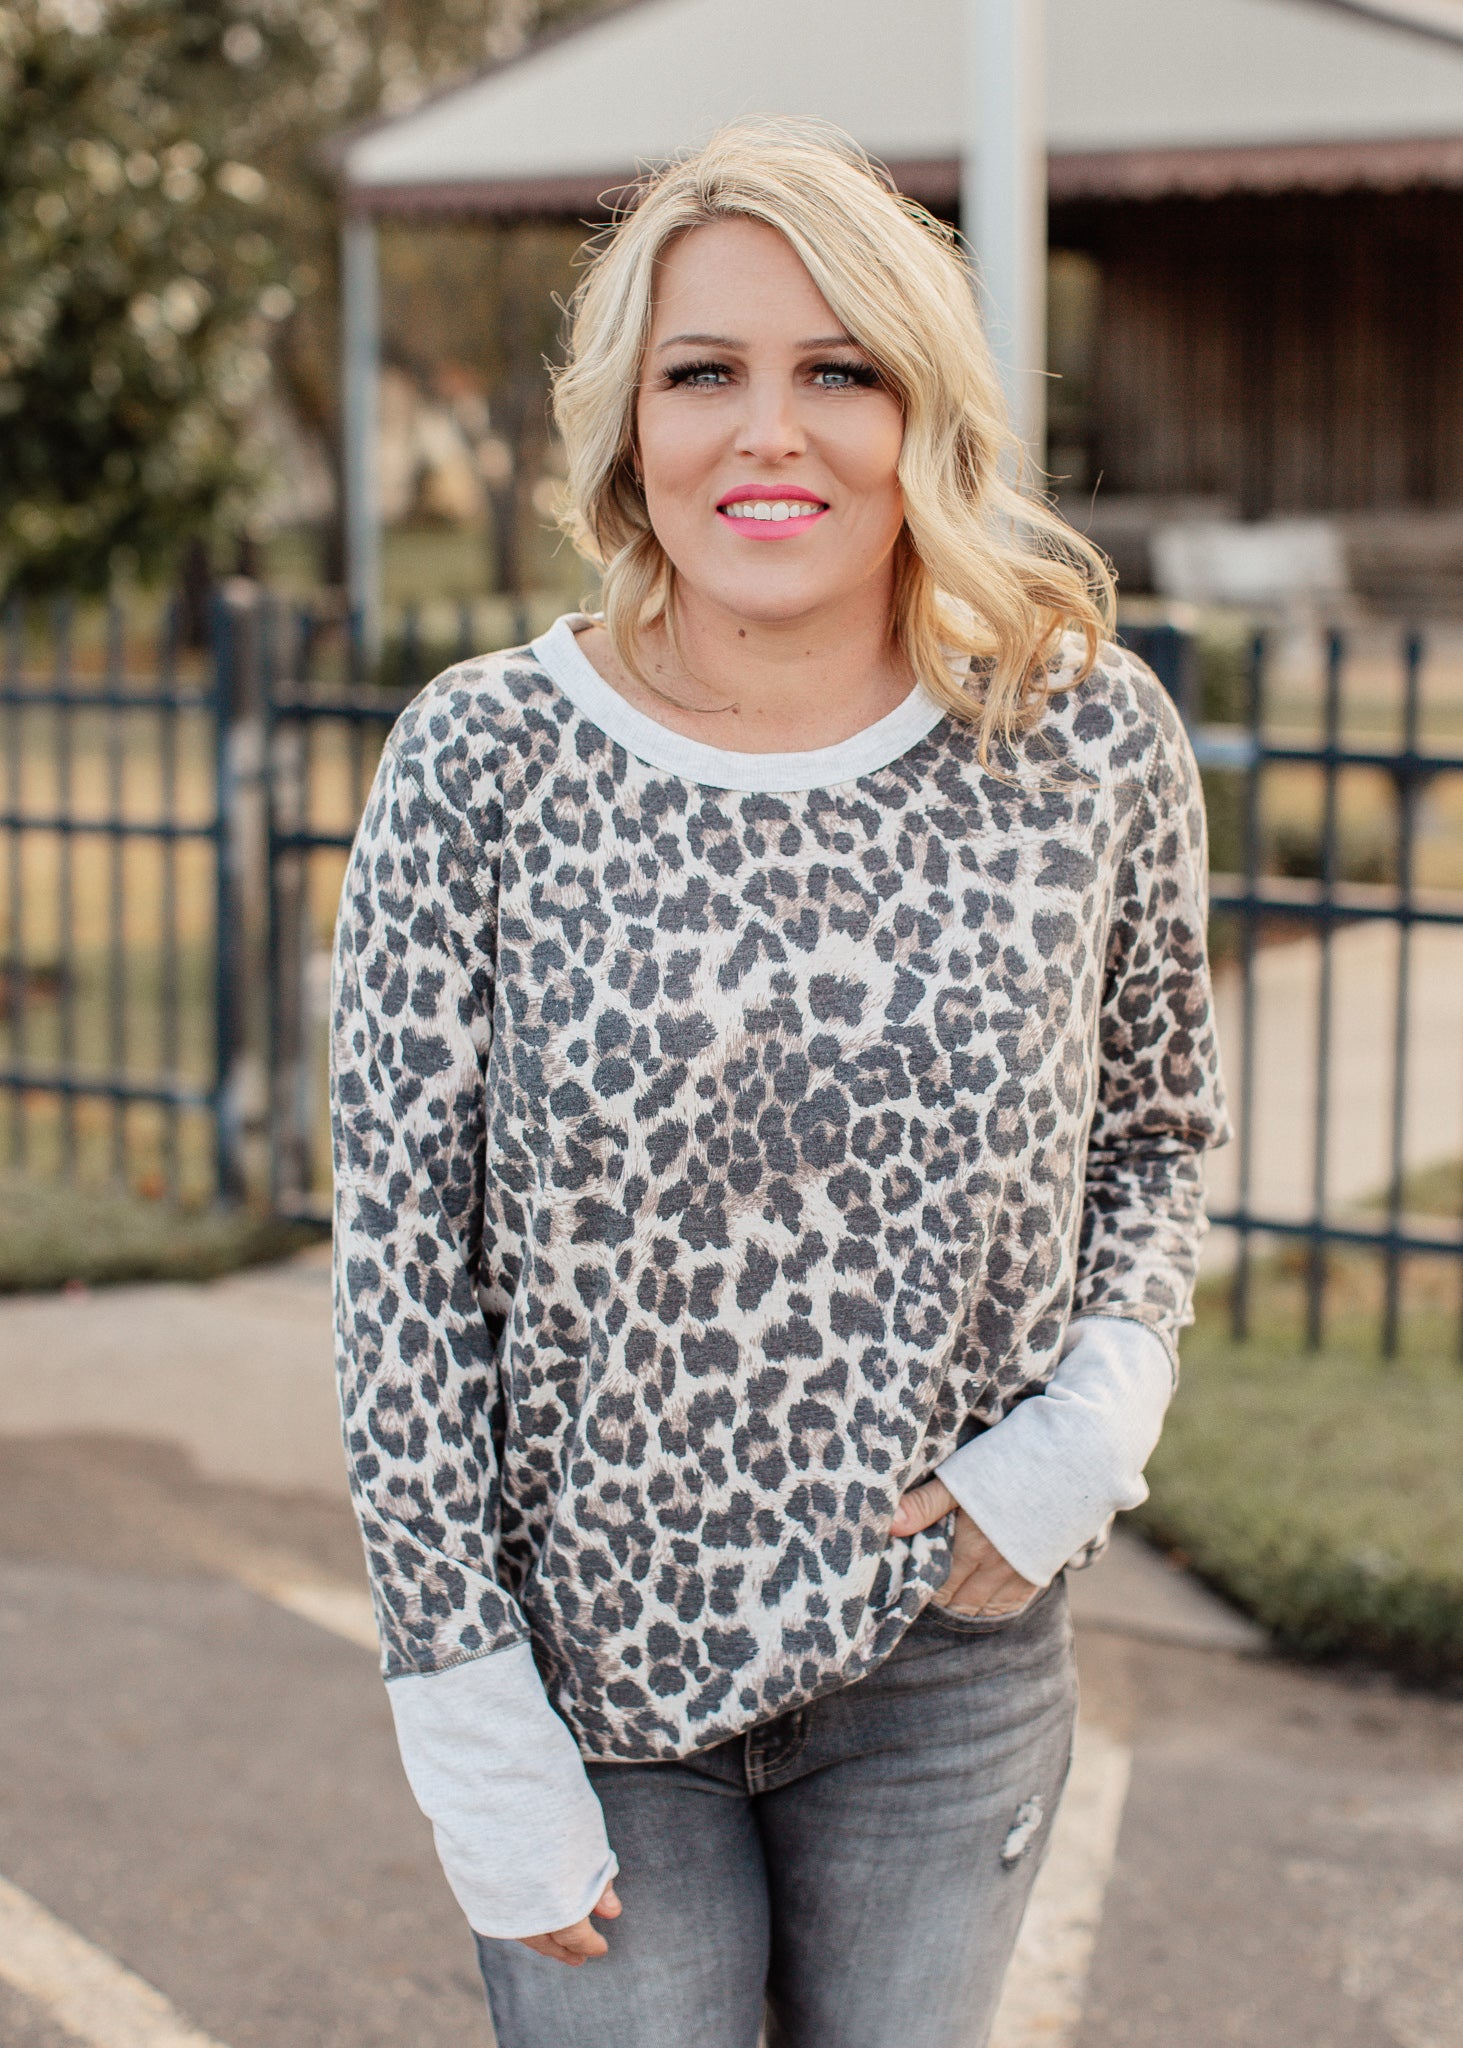 Courtney Leopard Top (S-3X)